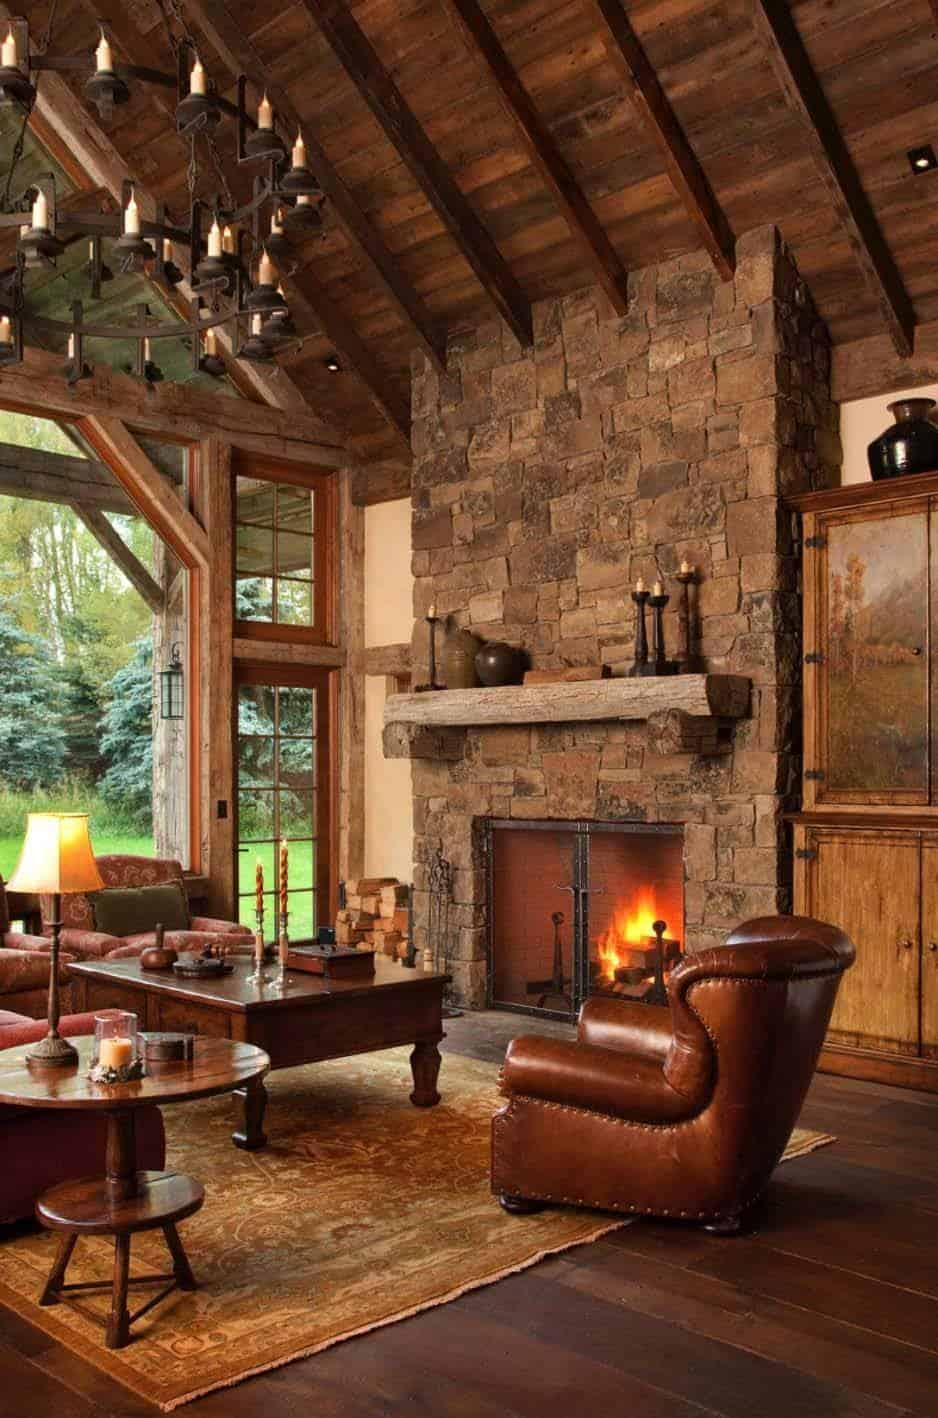 Cozy Fireplace Ideas-42-1 Kindesign